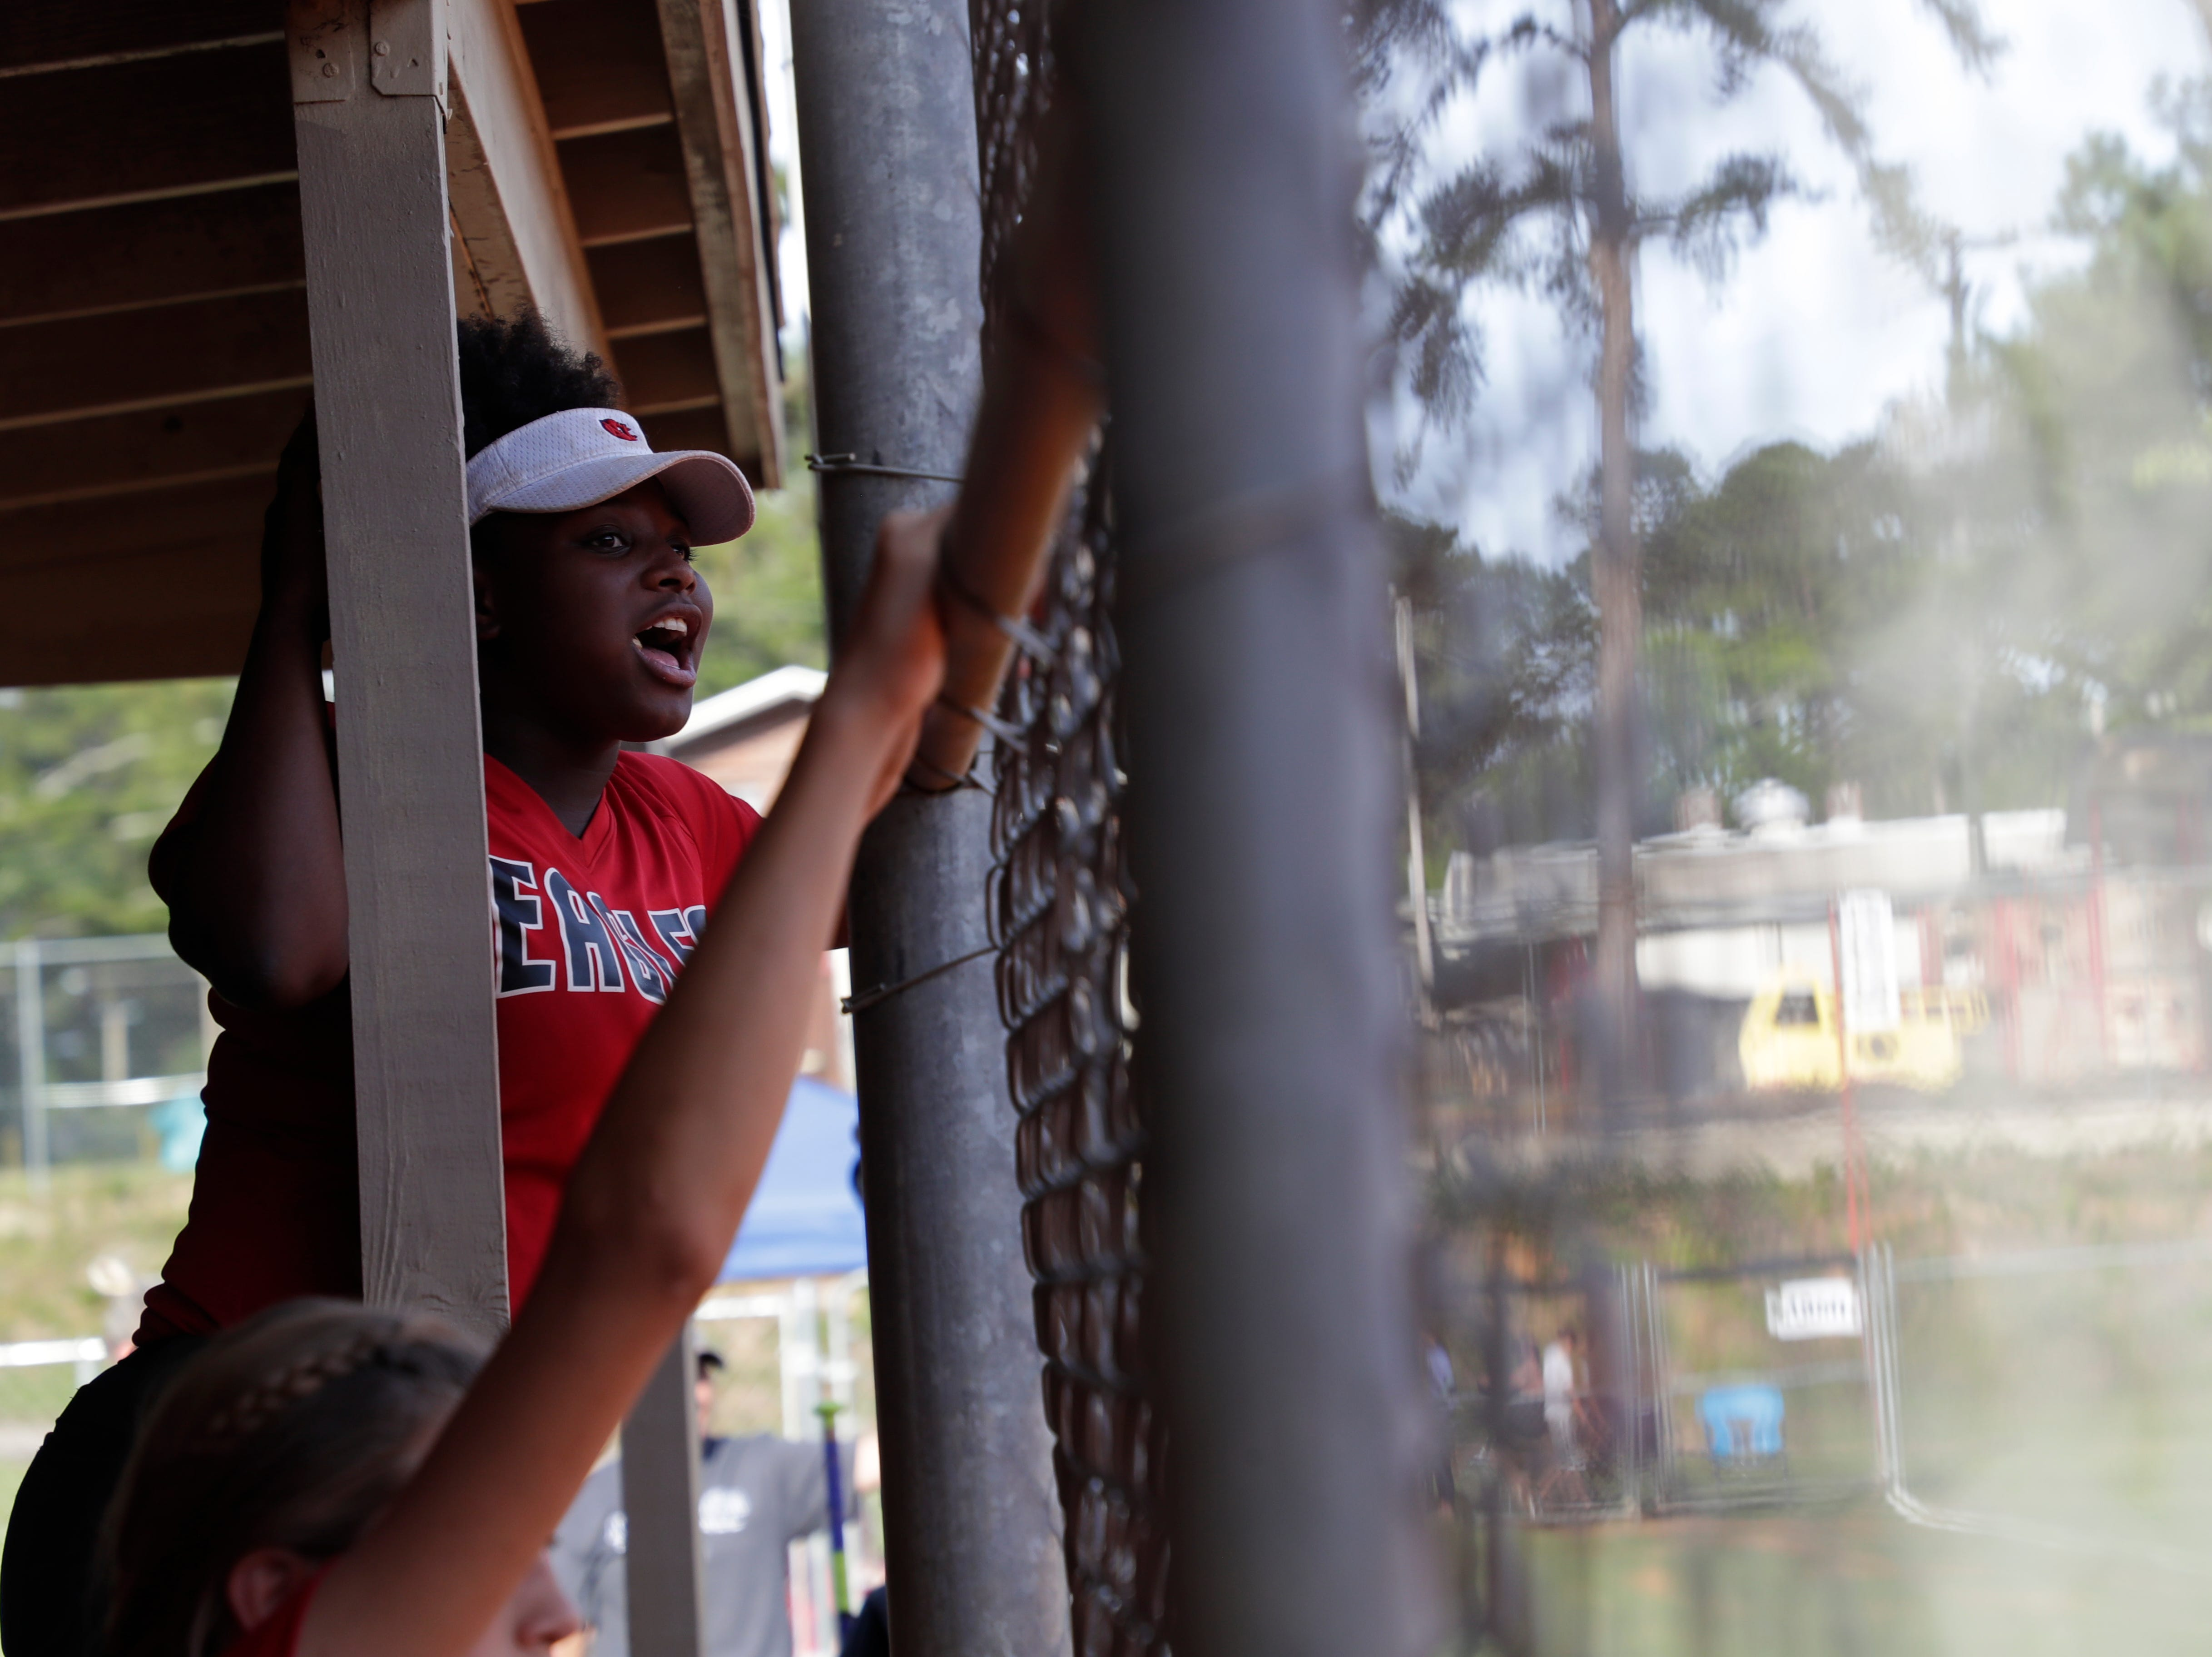 North Florida Christian's Alexis Howard (8) cheers her team on from the dugout during the 1-3A regional final game between NFC and University Christian at NFC Tuesday, May 14, 2019. UC defeated NFC 16 to 11 to advance to the state tournament.